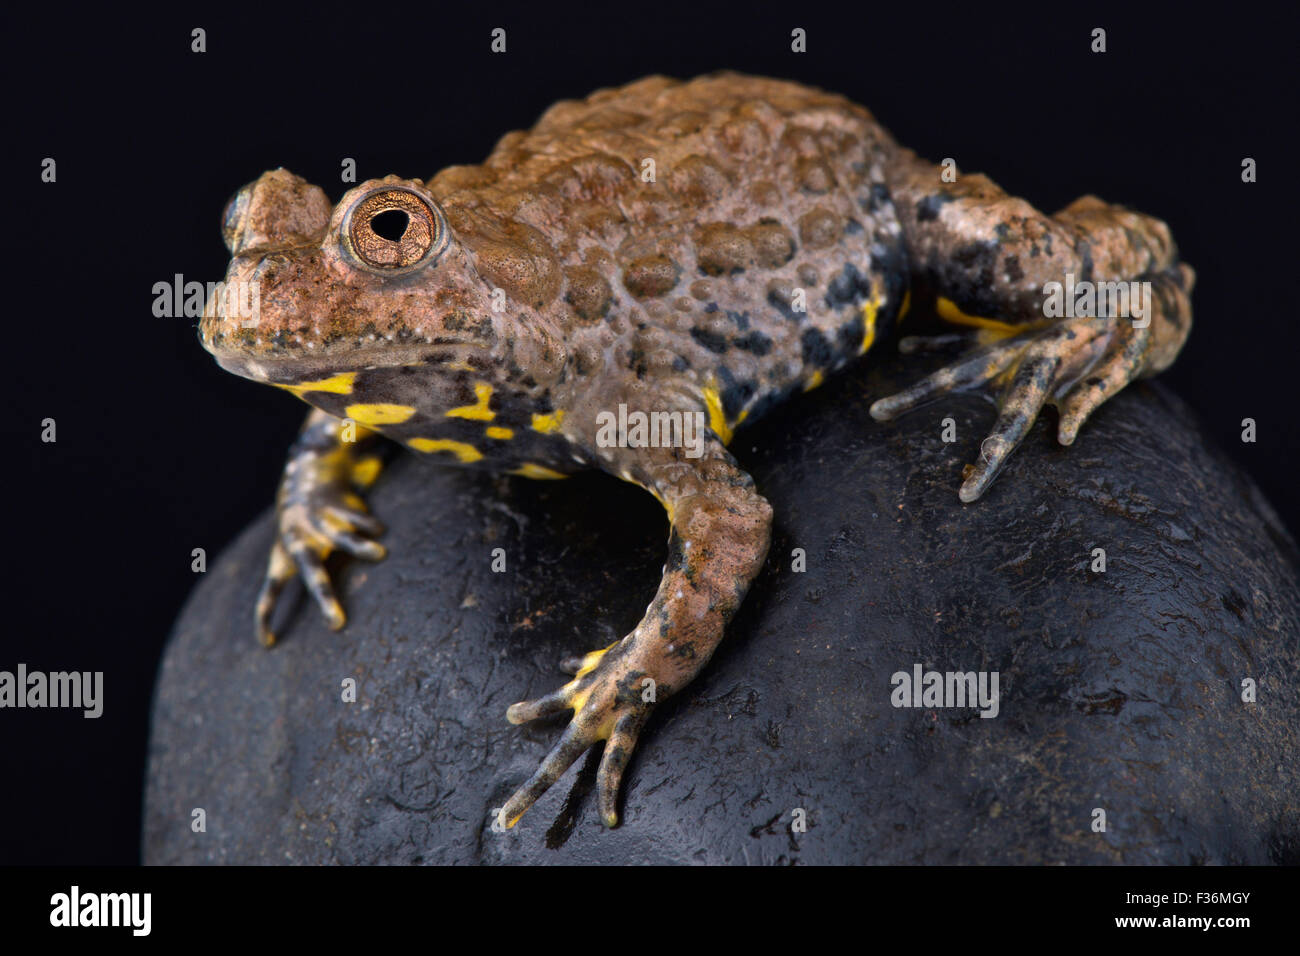 Yunnan fire-bellied toad (Bombina maxima) Photo Stock